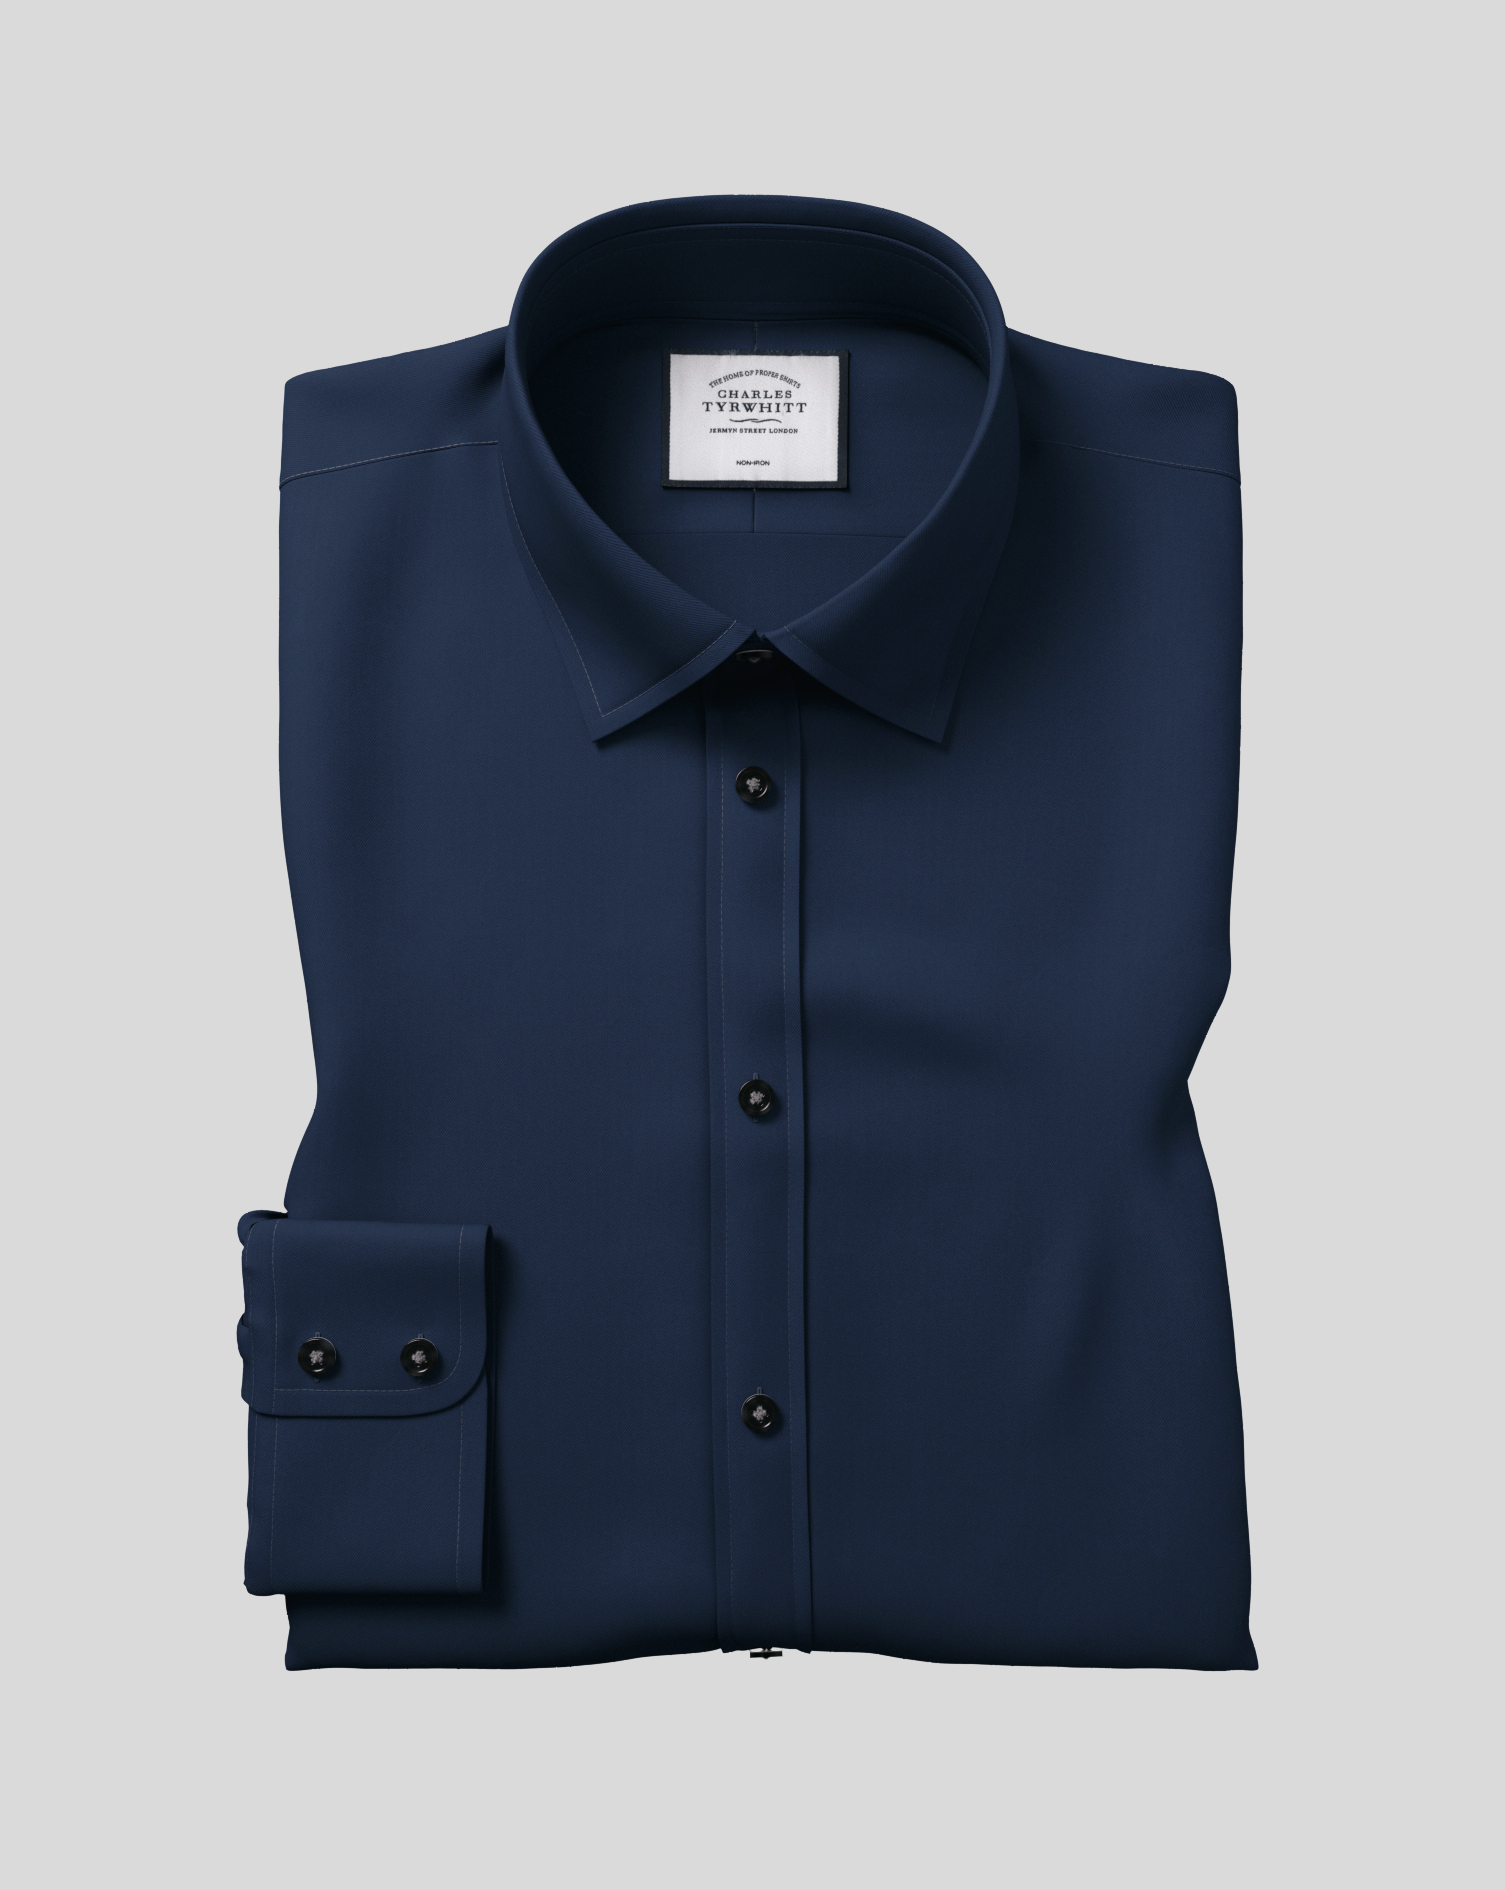 Cotton Classic Fit Navy Non-Iron Twill Shirt